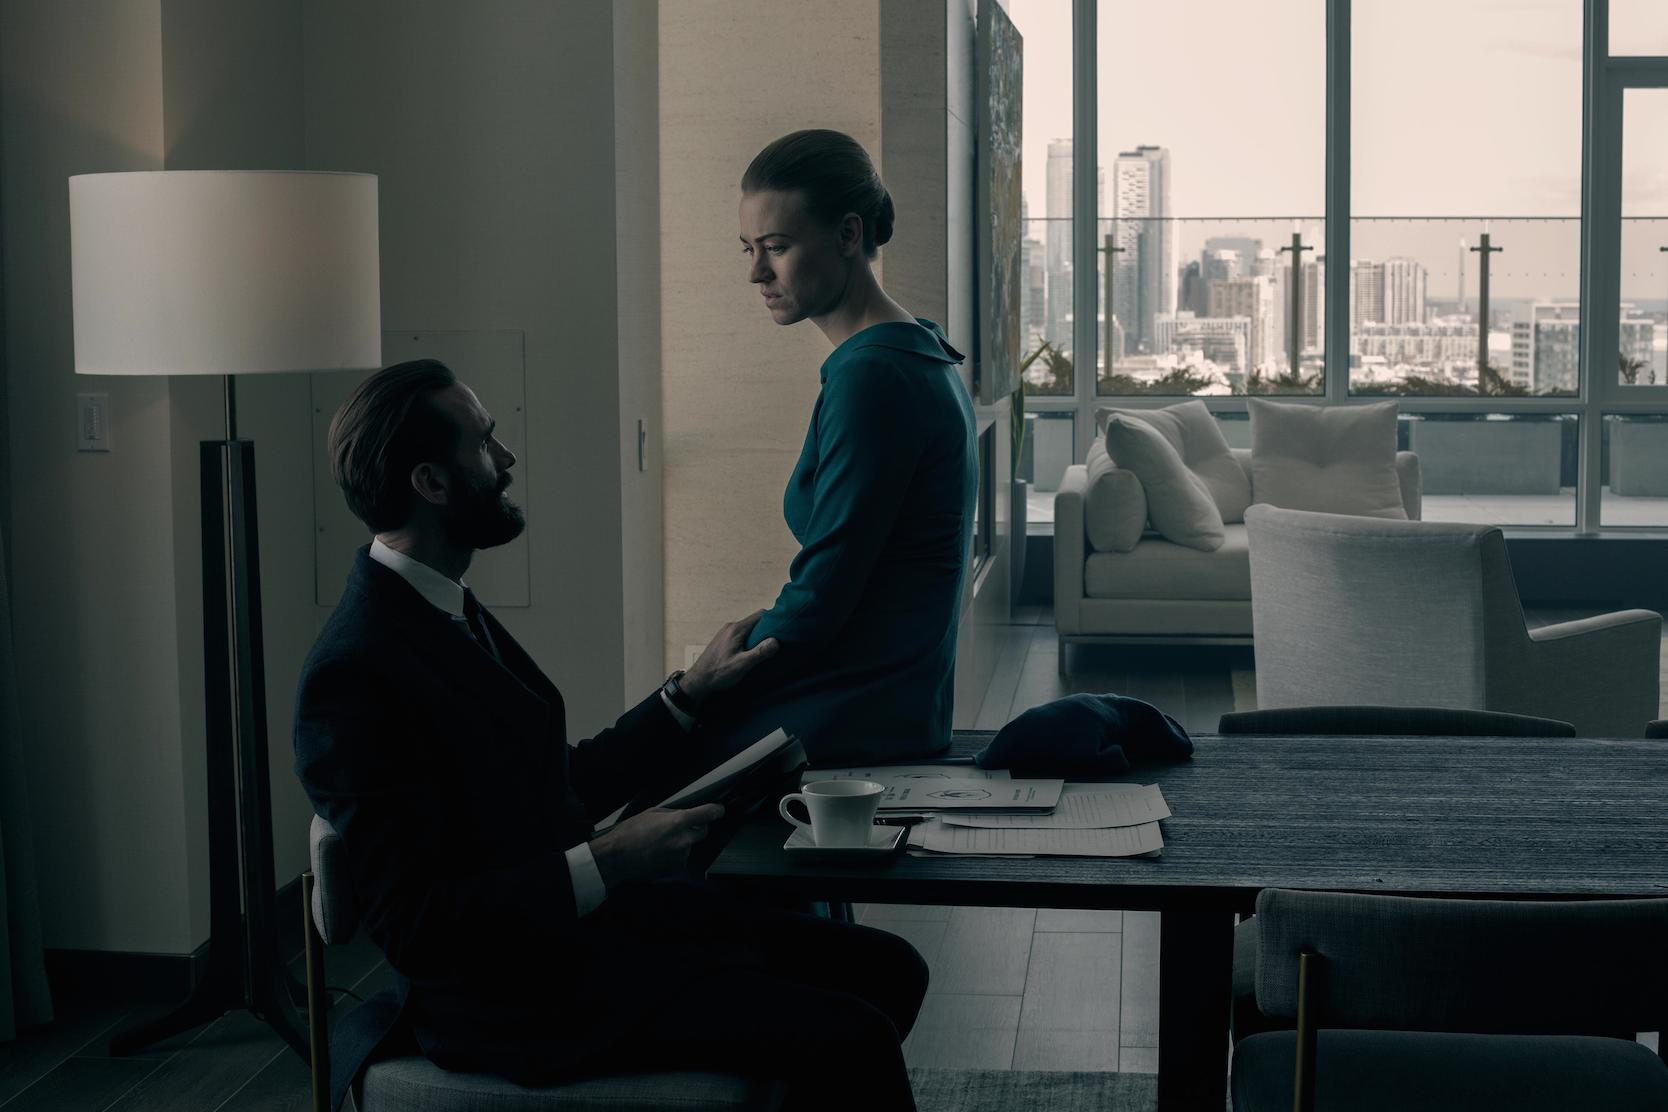 Fred and Serena Waterford in a hotel room speaking to each other in 'The Handmaid's Tale' Season 3